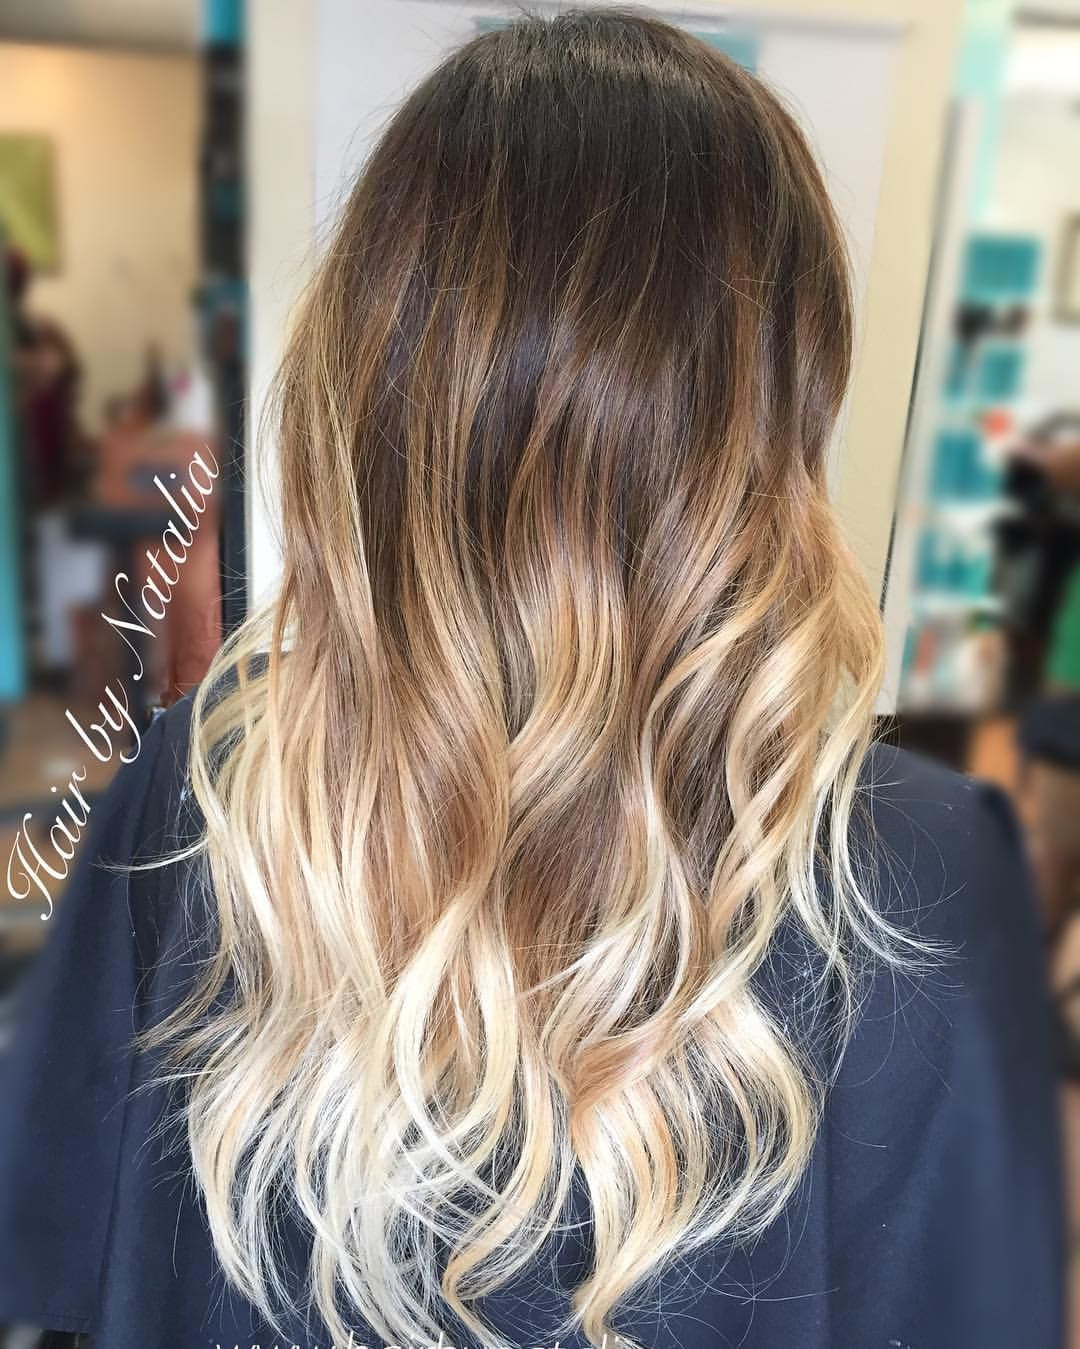 Balayage Hair Balyage Hair Blonde Balyage Brown Balyage